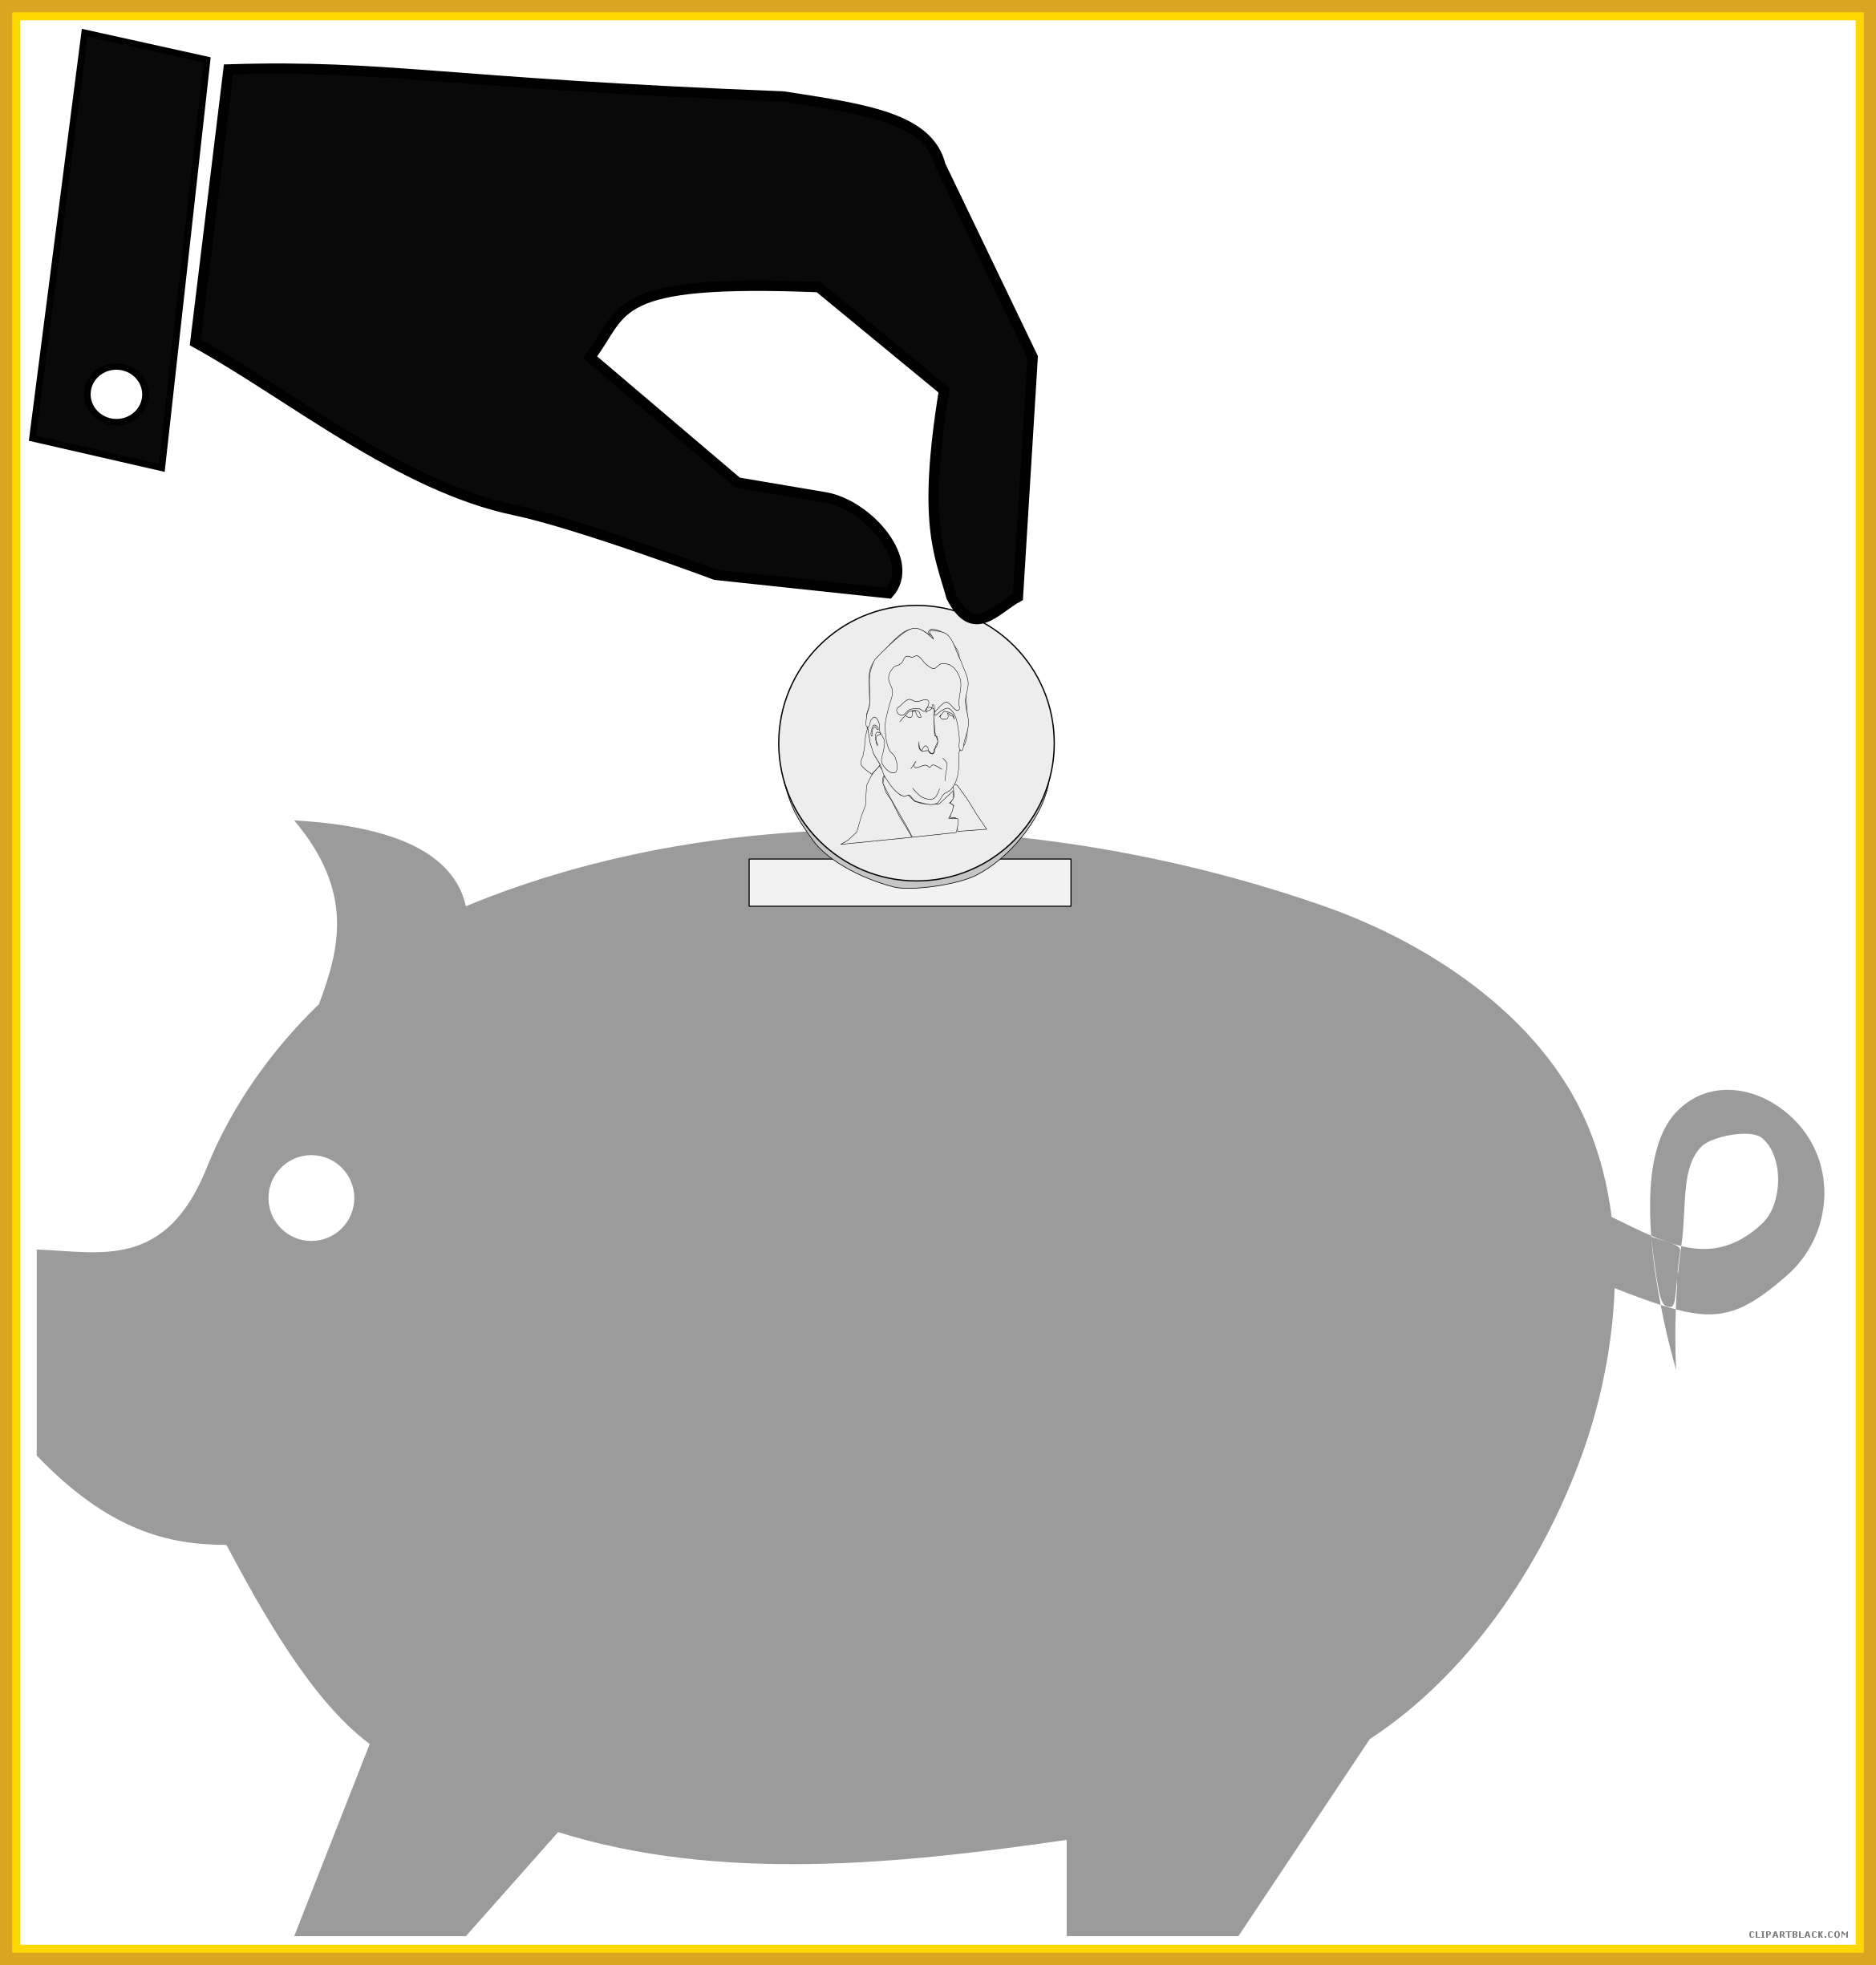 Father clipart piggy back ride. Amazing bank and falling